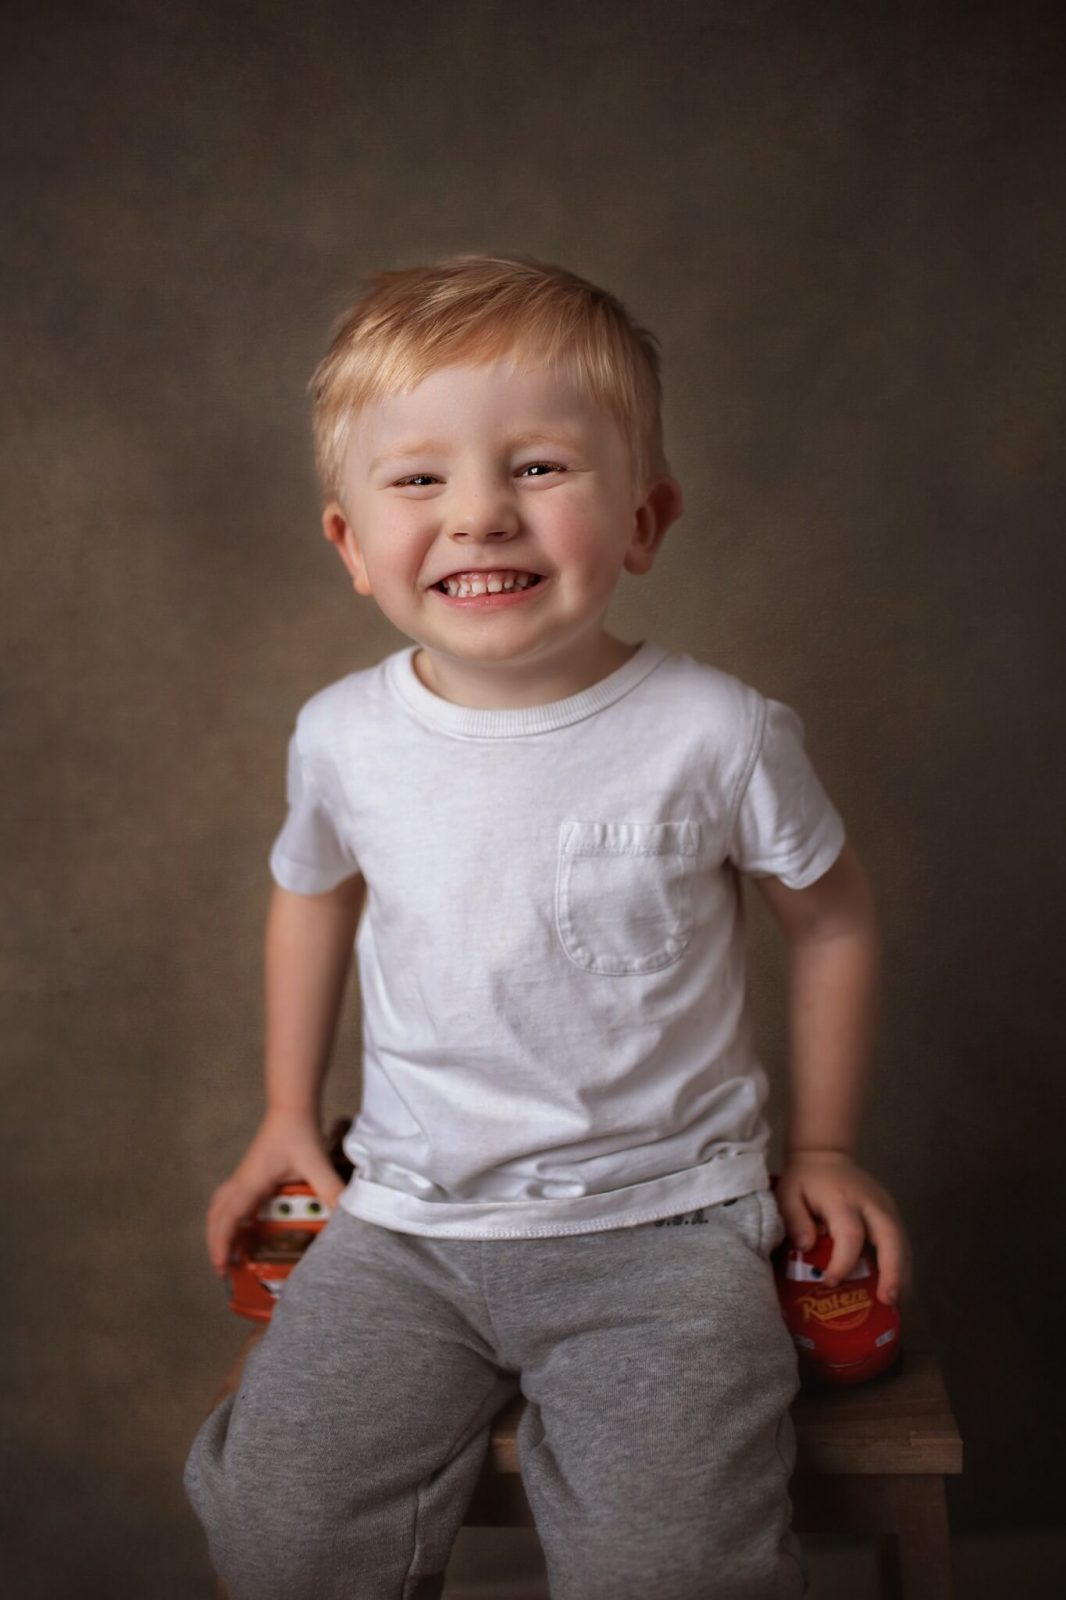 Kids Portrait photography in London